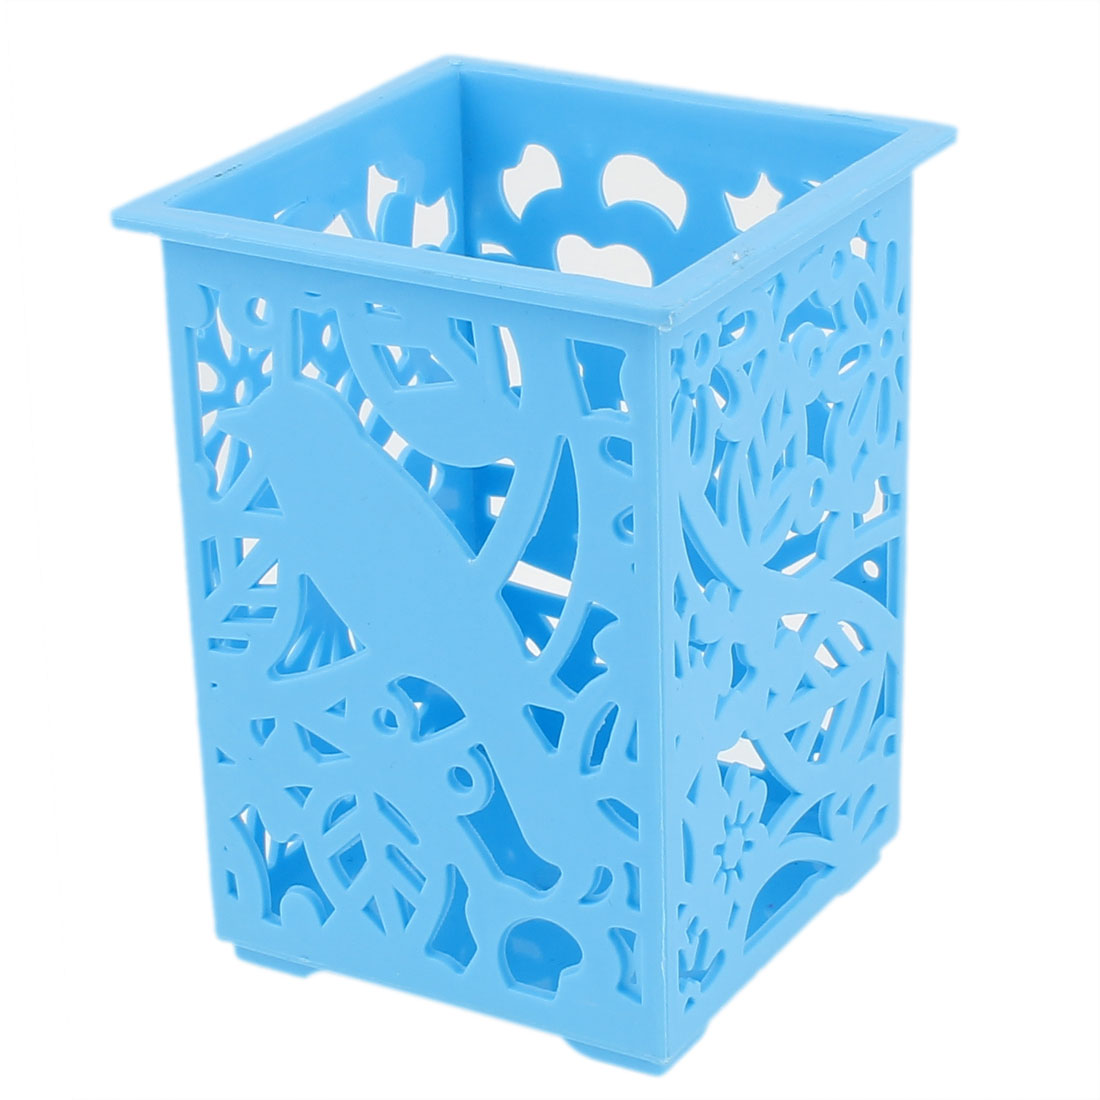 Home Blue Plastic Eyebrow Pencil Phone Storage Basket Container 7 x 10cm